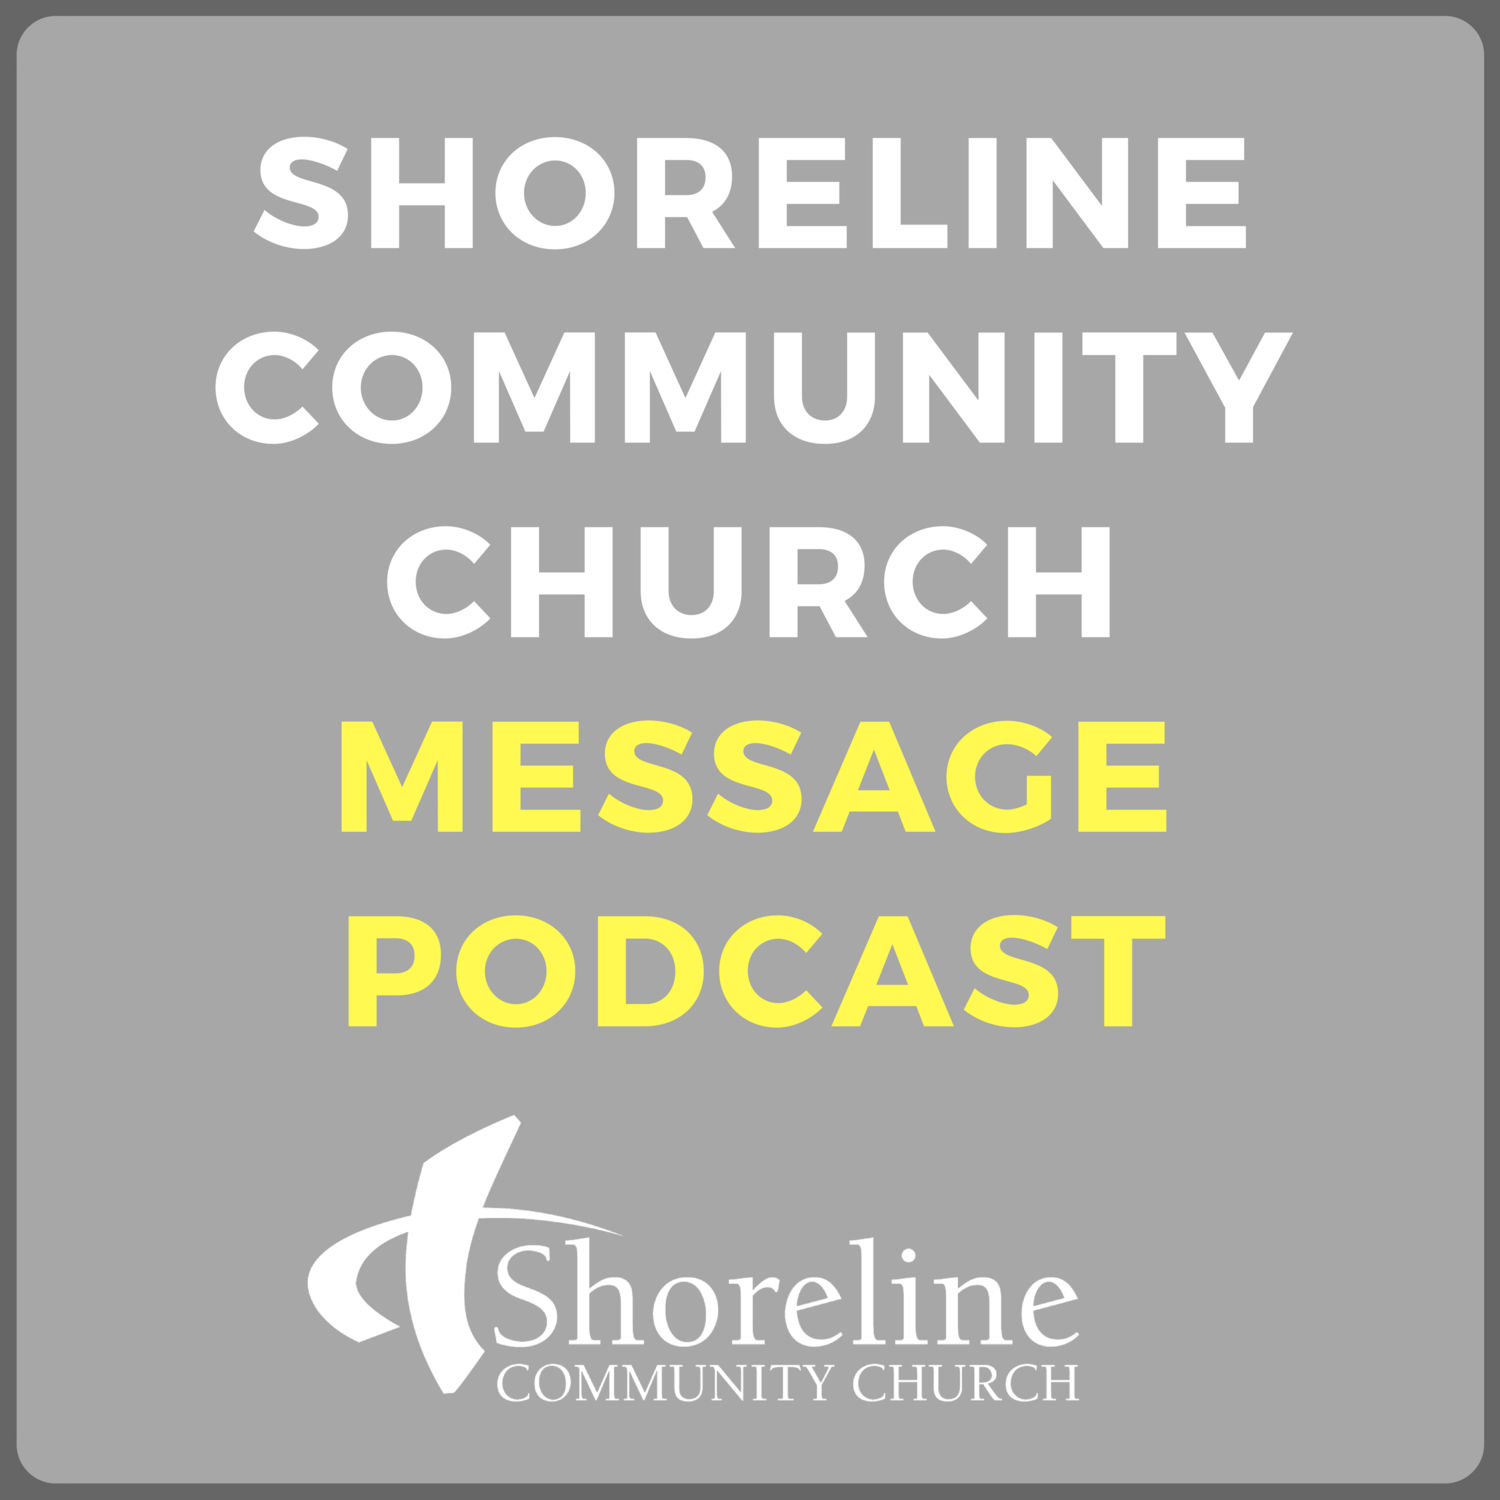 Shoreline Community Church Podcast